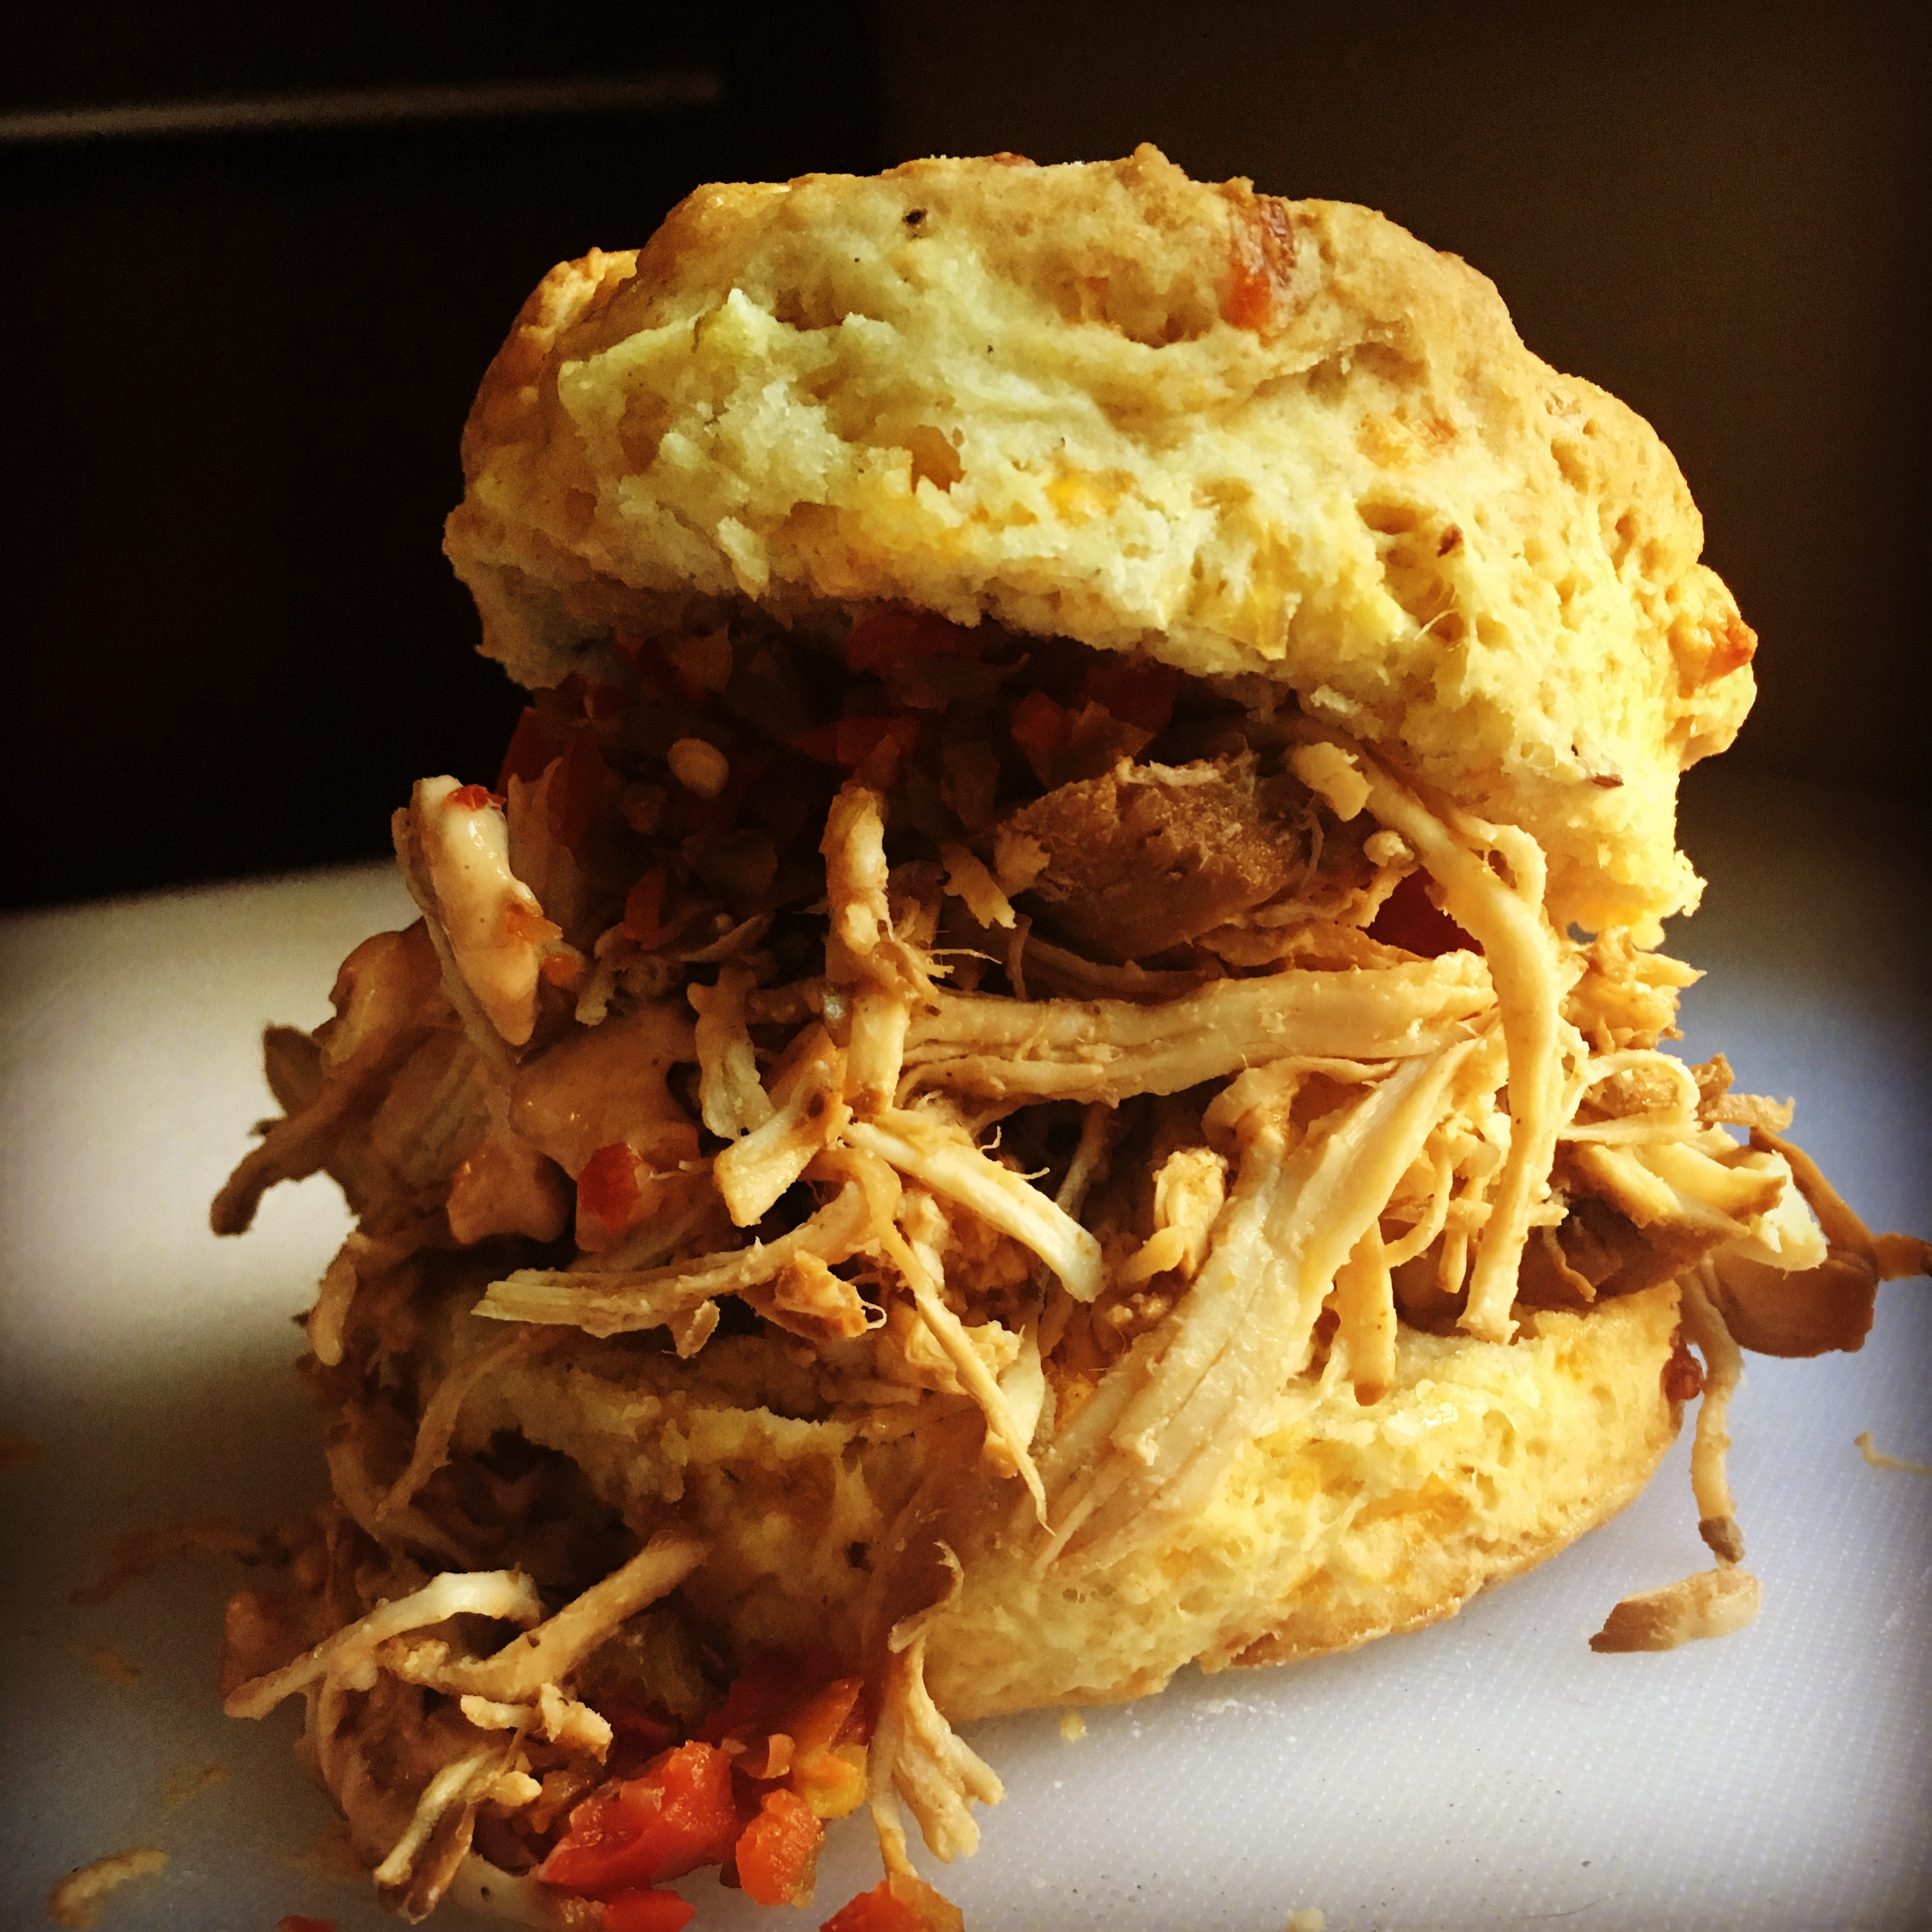 Brooklyn Biscuit Co. Pulled Chix